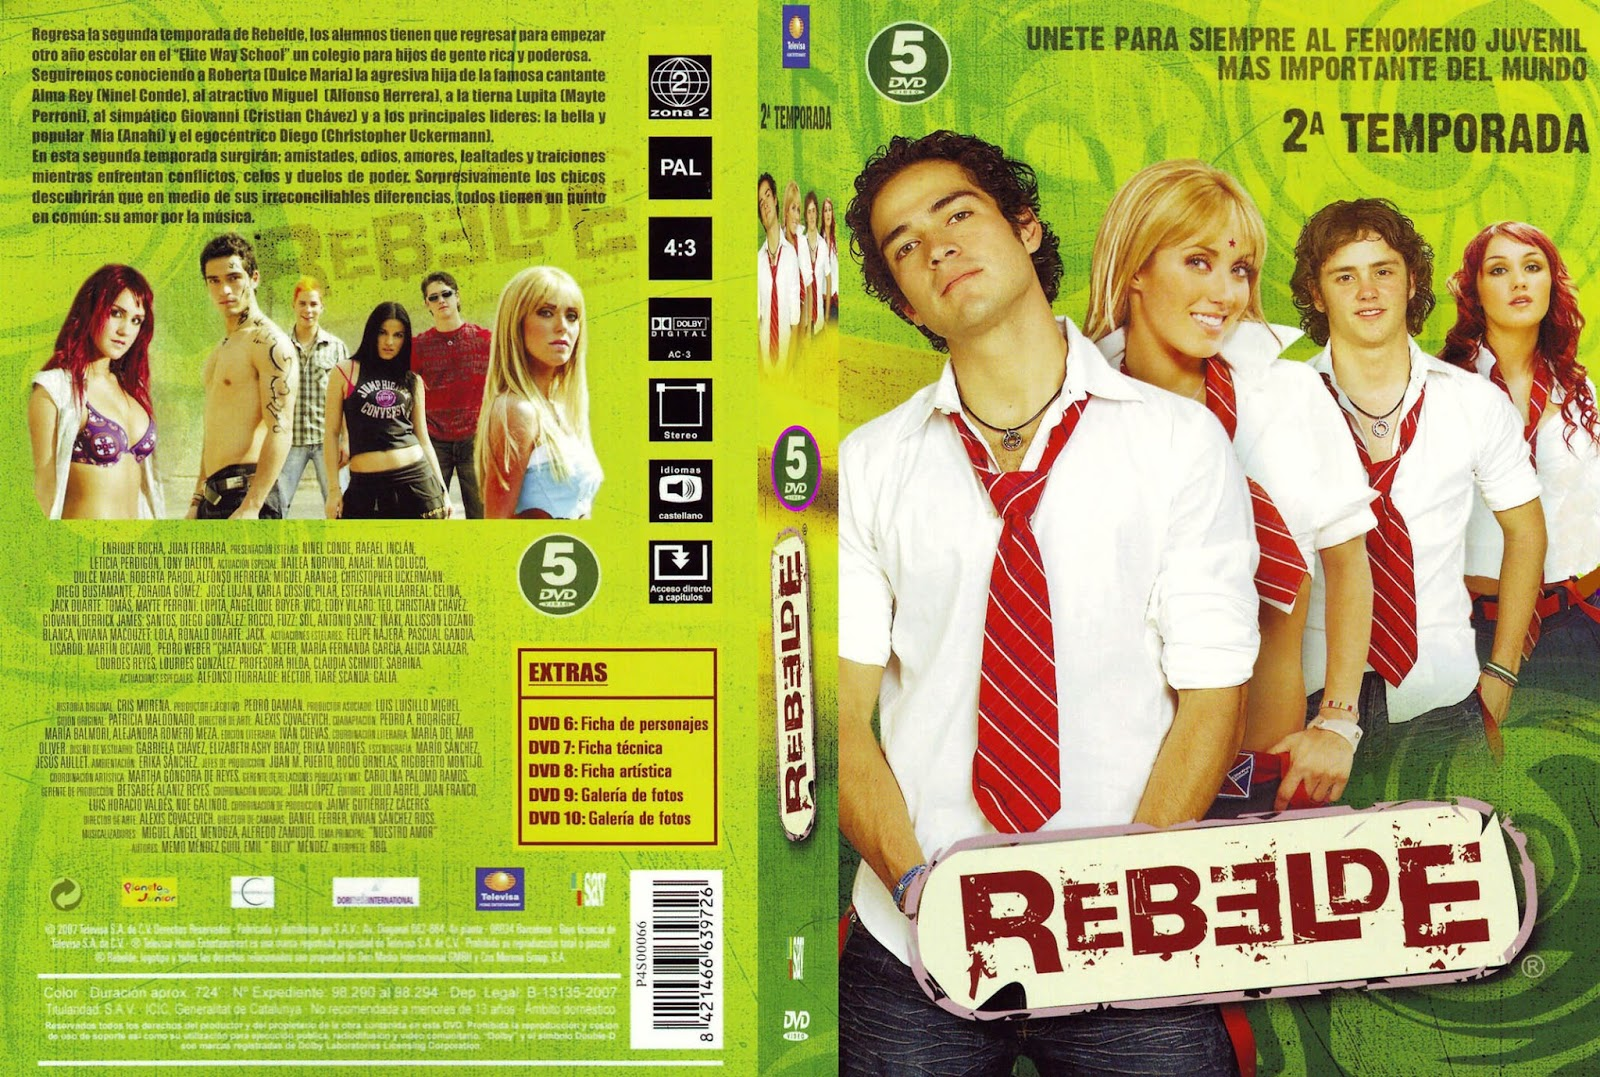 Rebelde mexicano 1 temporada download